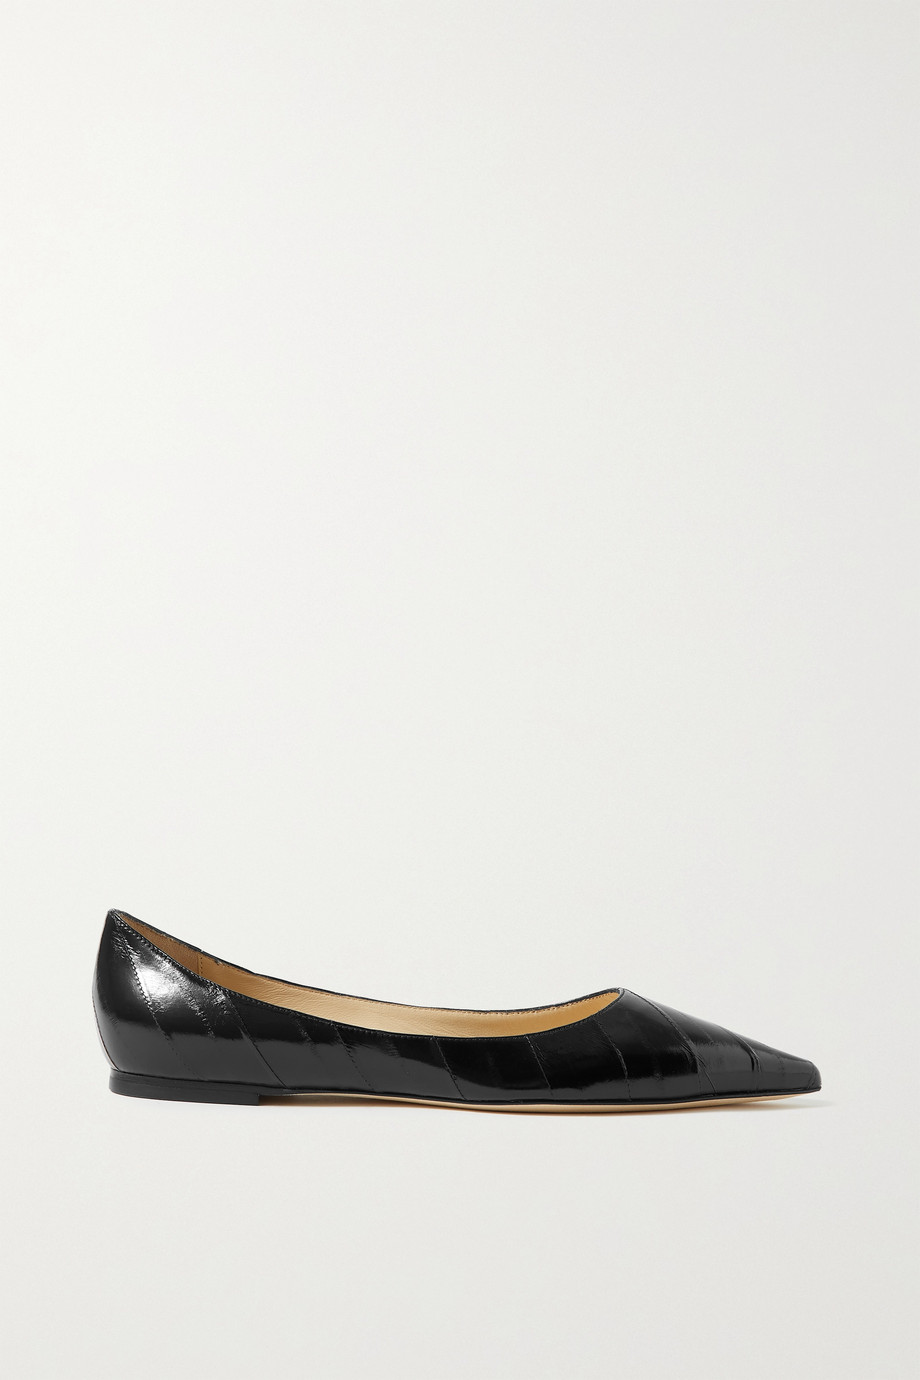 Jimmy Choo Love glossed-eel ballet flats